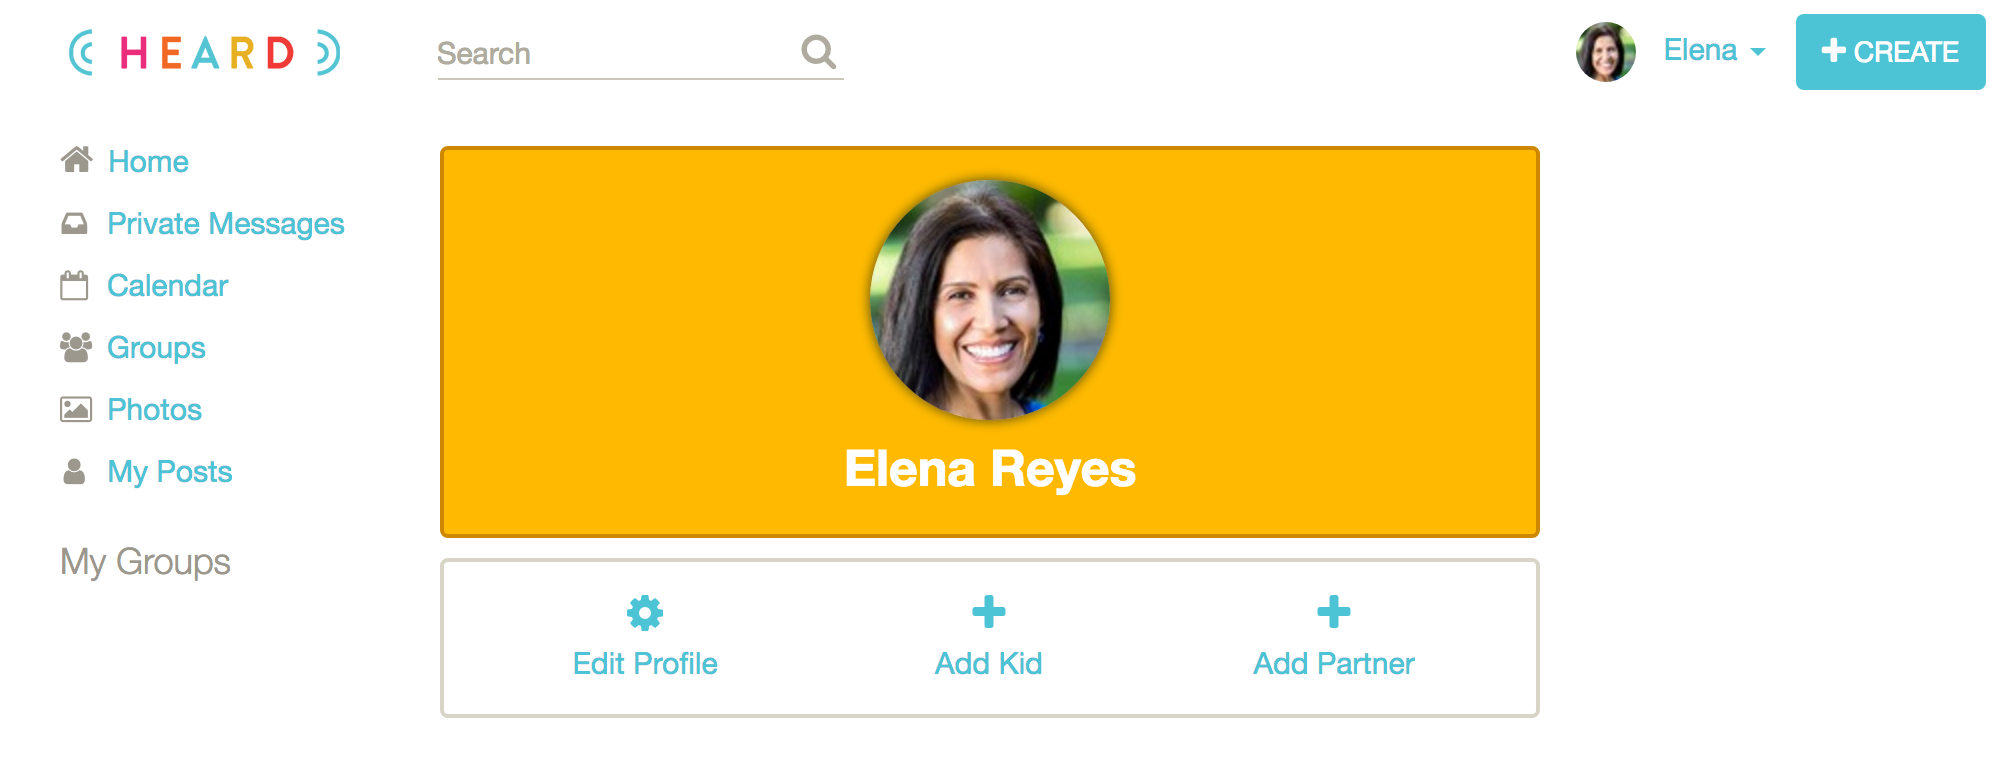 1. Once your profile is complete, it's time to create your class group. Click +CREATE at the top right. -